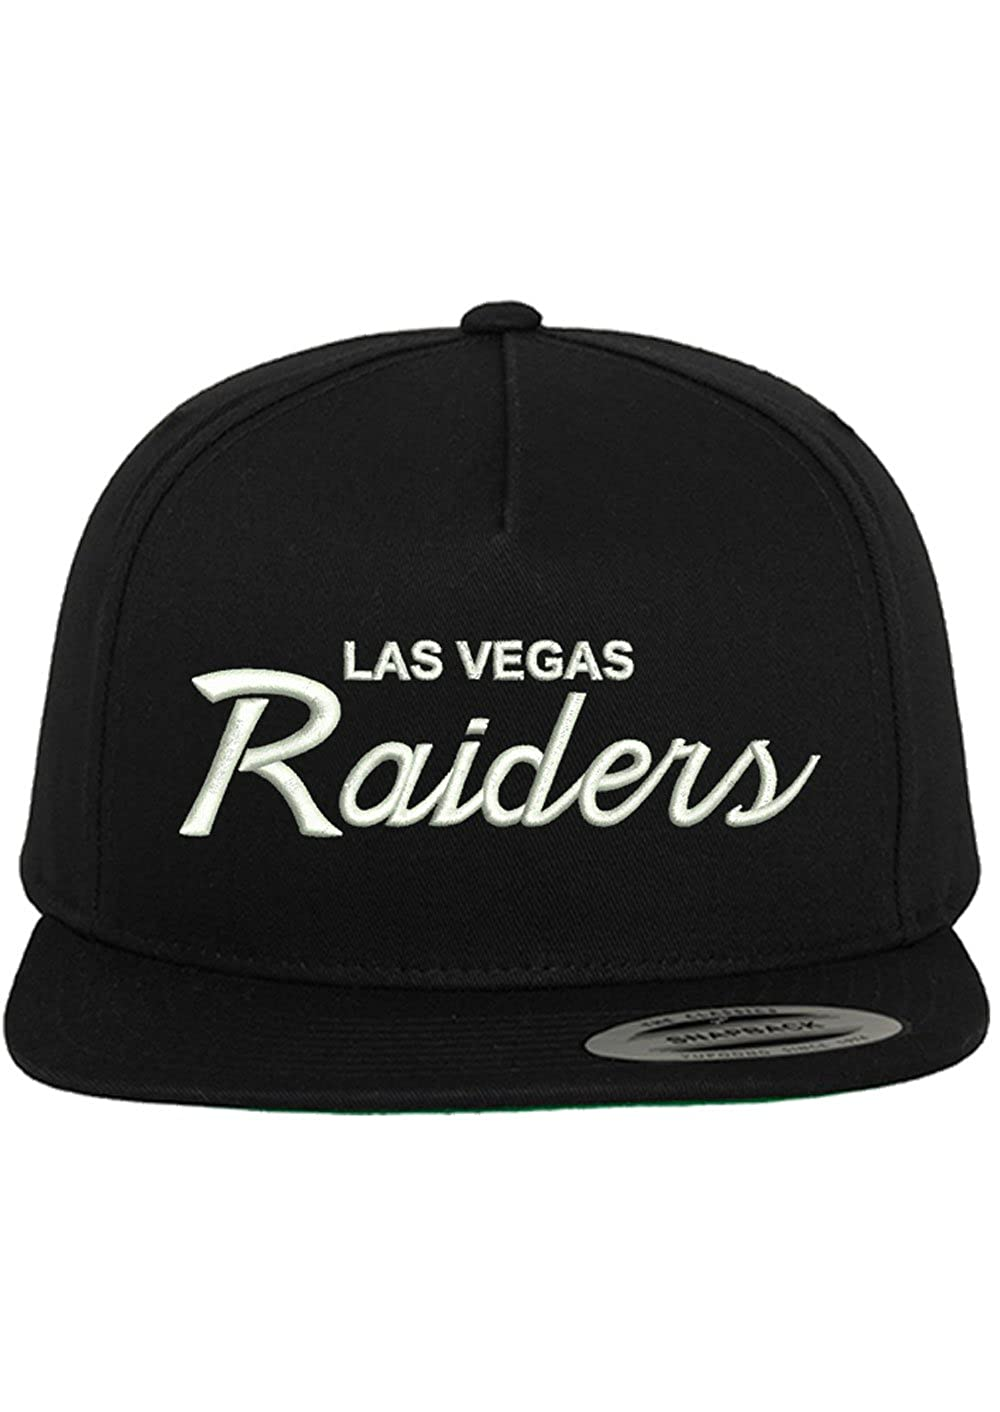 CUSTOM Las Vegas Raiders Embroidered Script Snapback Hat Cap - Black